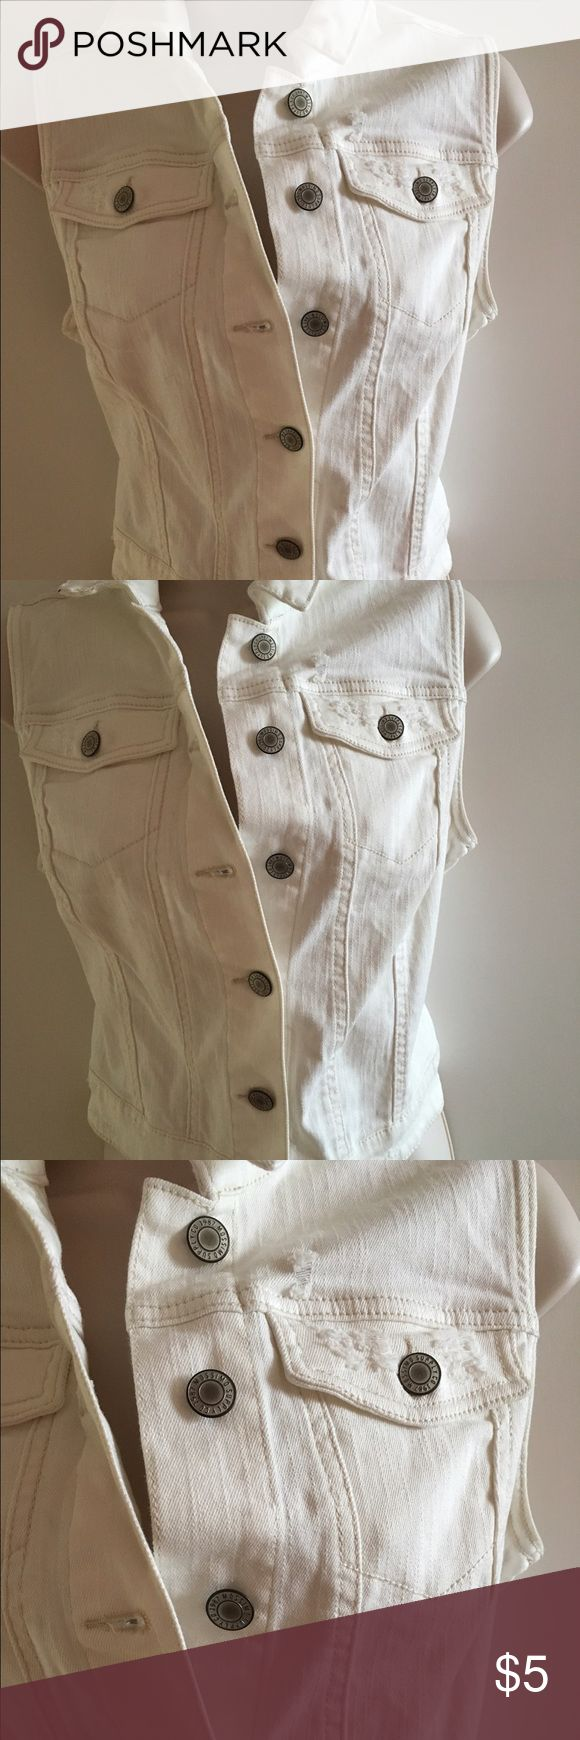 White denim vest Like new worn once no stains no rips very cute Mossimo Supply Co. Jackets & Coats Vests